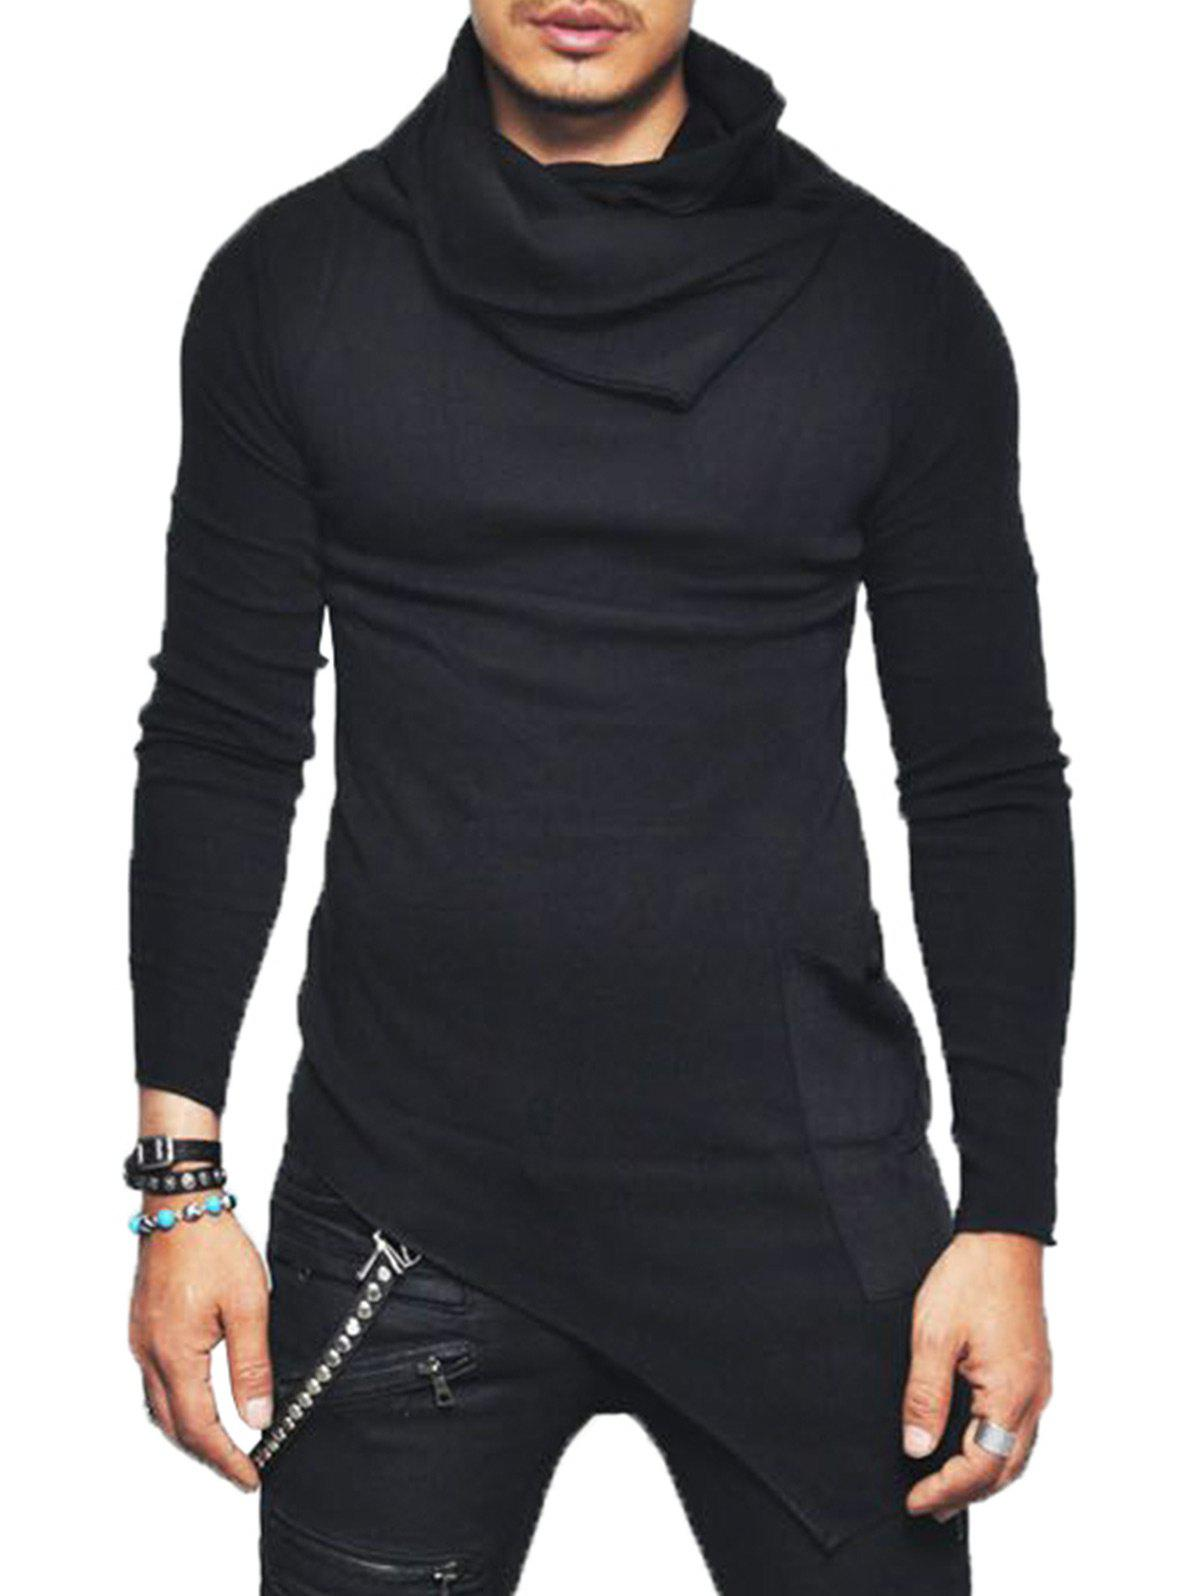 Pocket Cowl Neck Asymmetrical SweaterMEN<br><br>Size: 2XL; Color: BLACK; Type: Pullovers; Material: Cotton,Polyester; Sleeve Length: Full; Collar: Cowl Neck; Style: Fashion; Weight: 0.4110kg; Package Contents: 1 x Sweater;